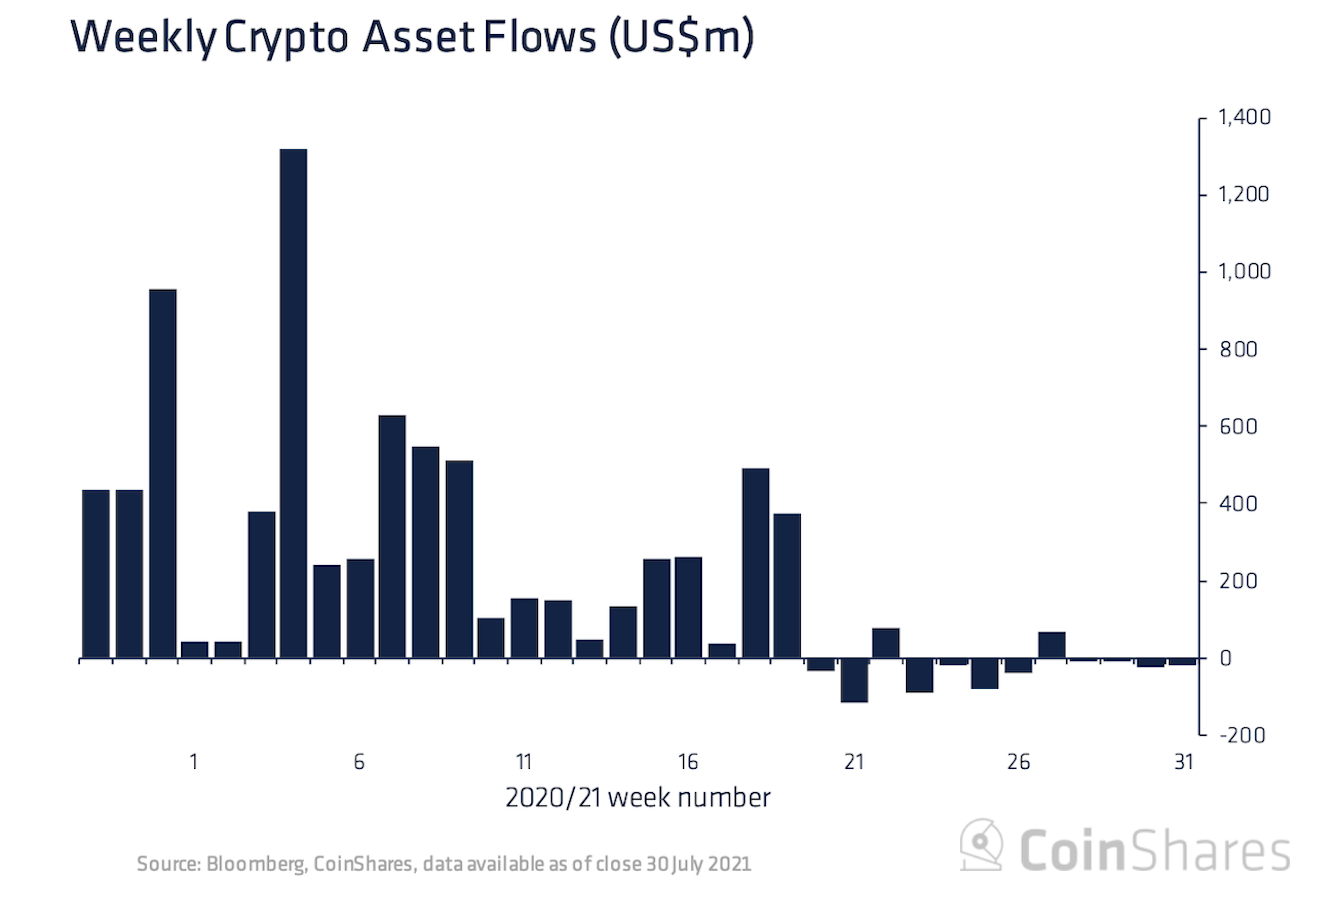 Digital Asset Funds Suffered Outflows as Bitcoin Price Recovered